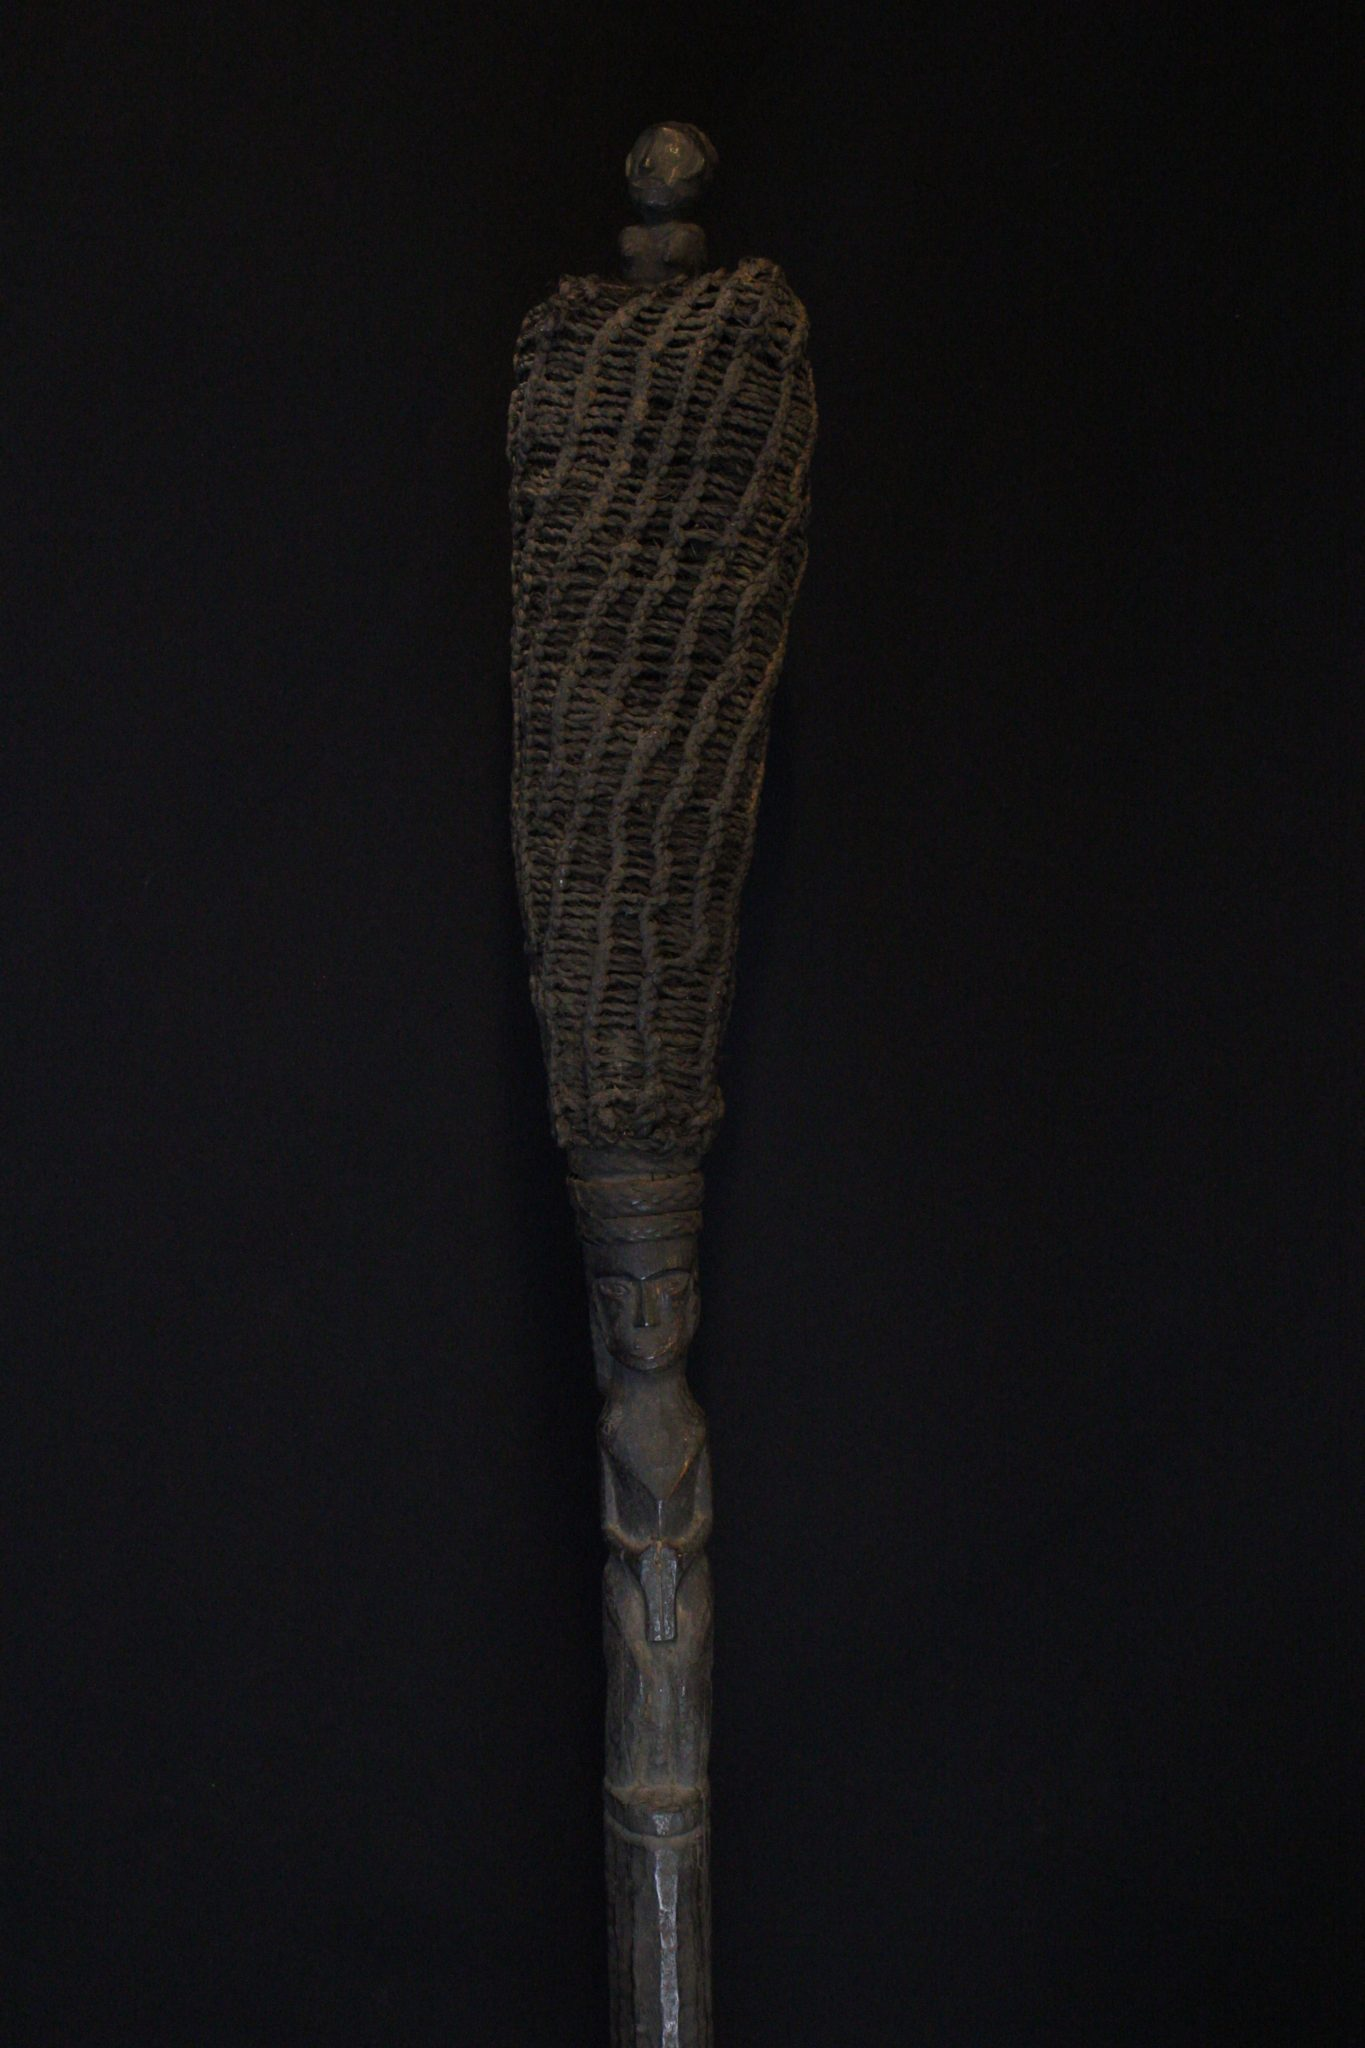 "Shaman's Magic Staff, Sumatra, Indonesia, Batak tribe, Early 20th c, Wood, plant fiber, rattan, pigmented with soot. Used for calling spirits and in healing rituals. 56 ½"" x 5"" x 4 ¾"", $1600."